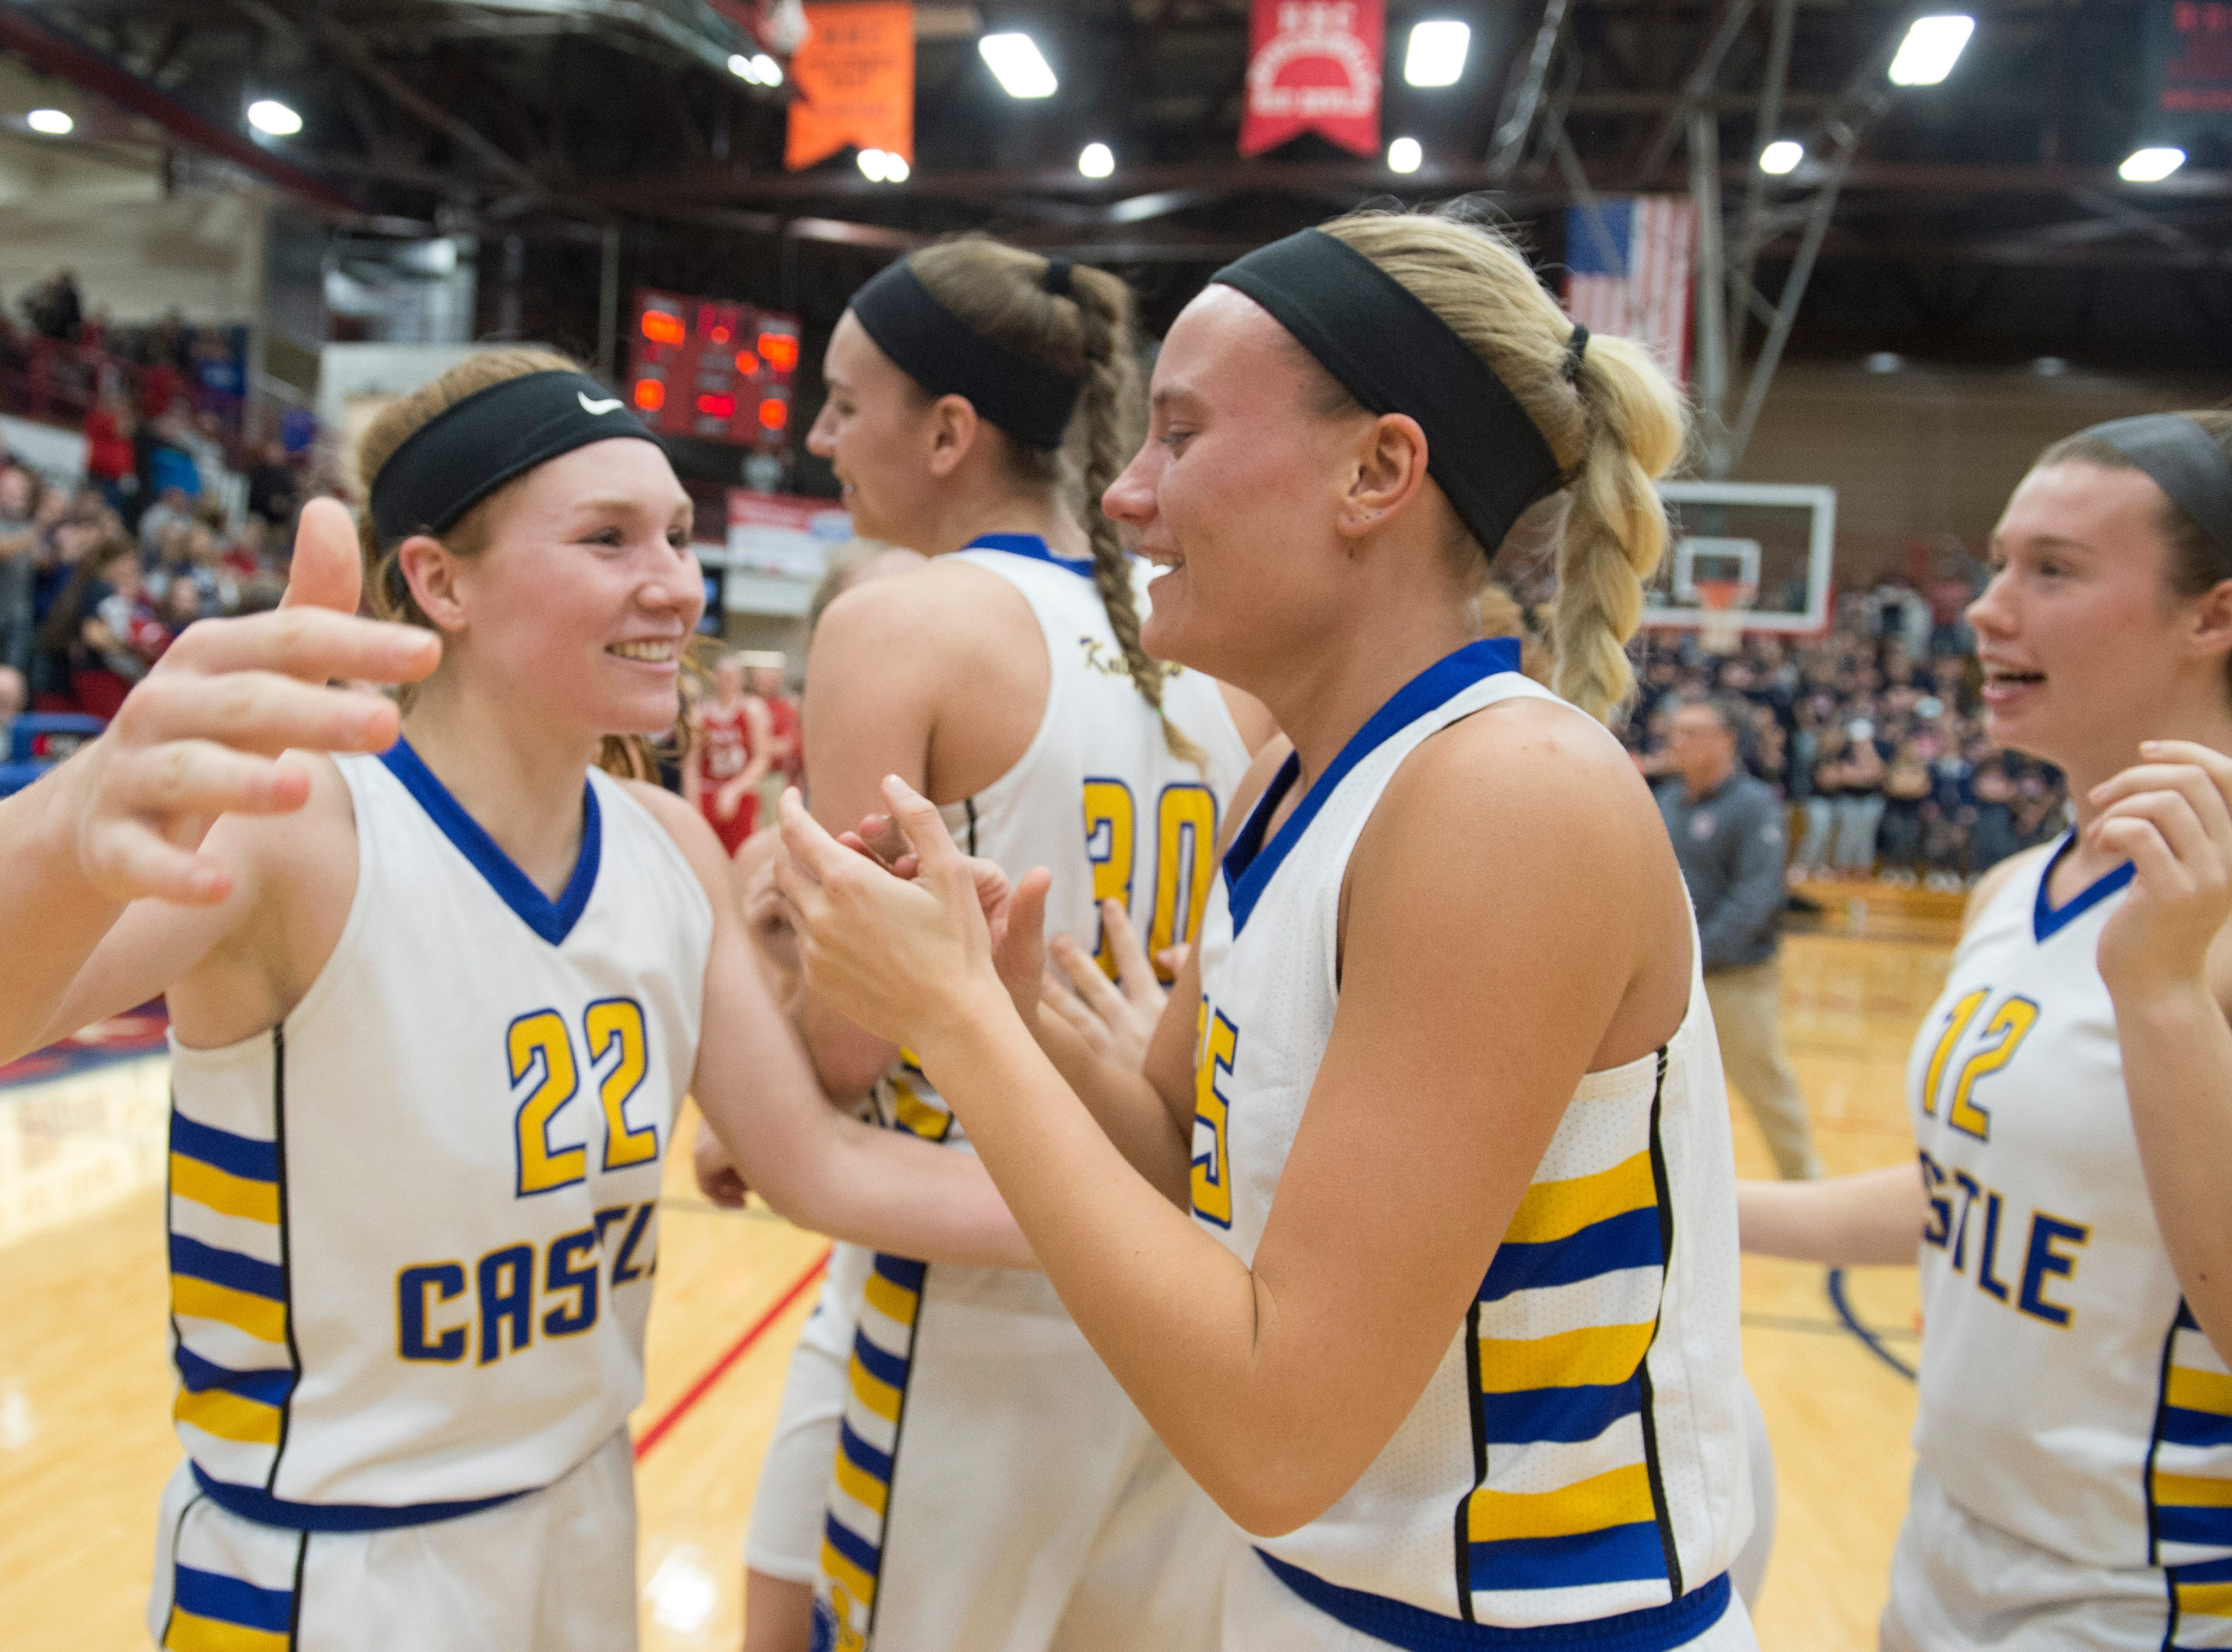 Castle's Hannah Hood (22) hugs Paige Hopkins (25) as they celebrate their IIHSAA Girls Basketball Class 4A Regional Championship game win over the Bedford North Lawrence Lady Stars at the Stars Field House in Bedford, Ind. Saturday, Feb. 9, 2019.